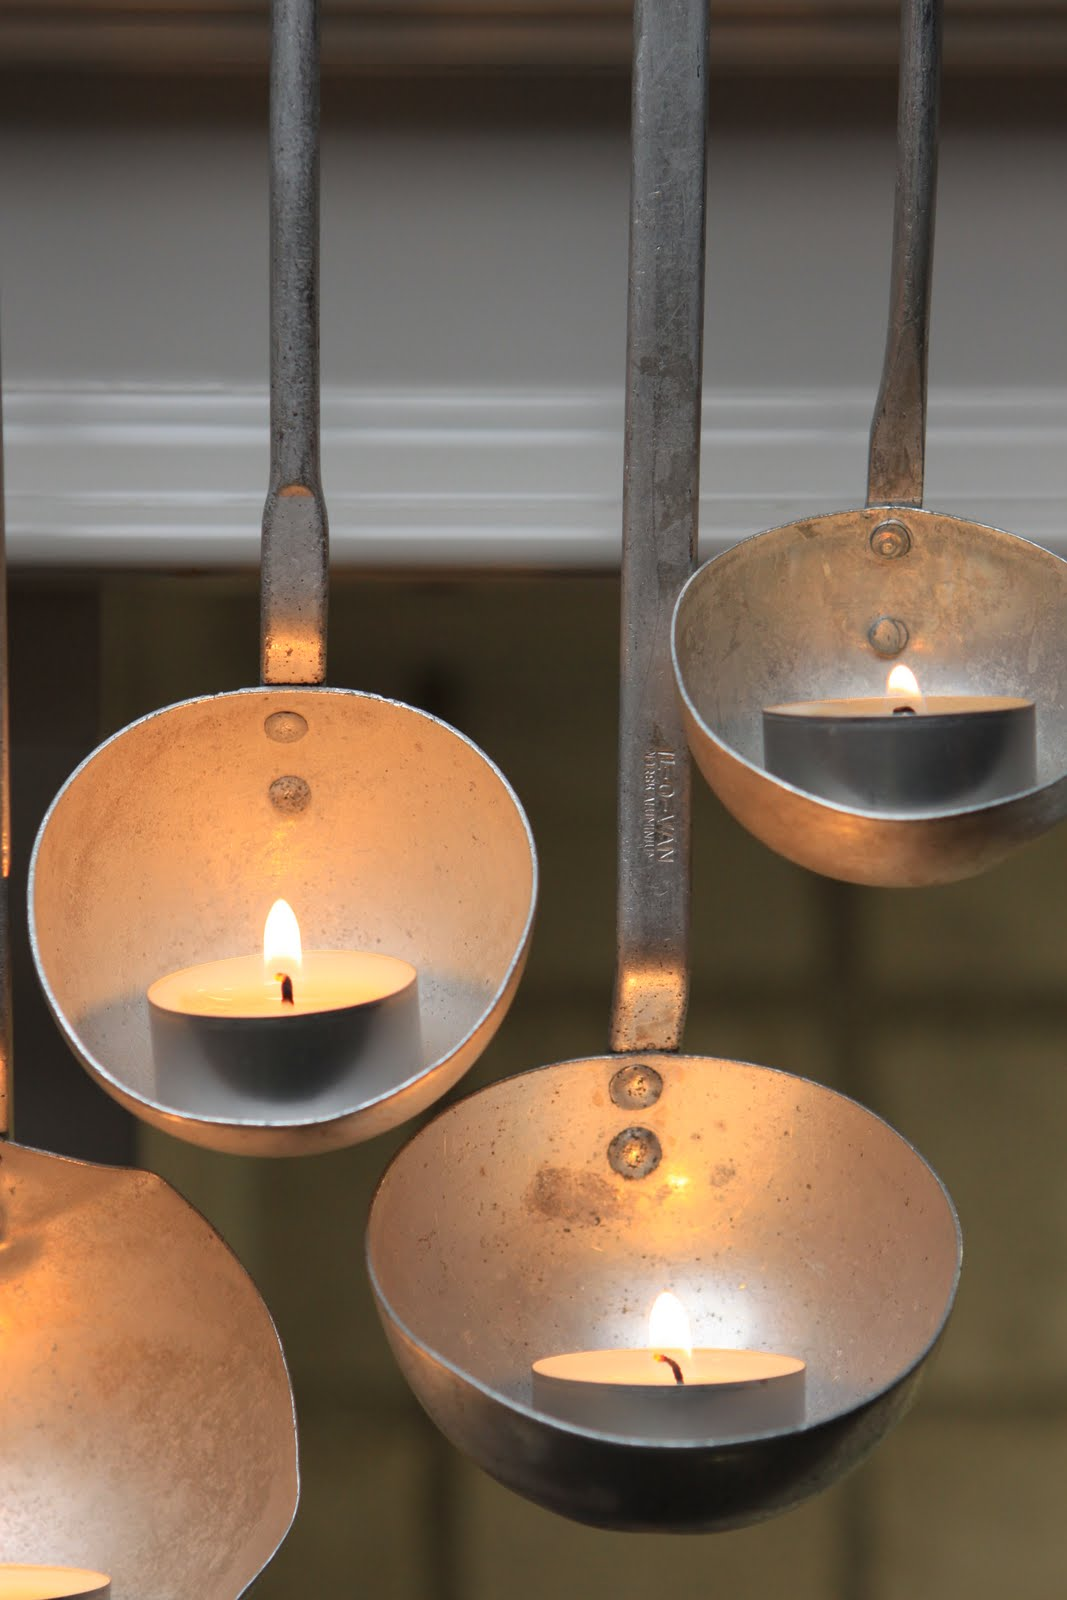 Diy hanging whisk tea light candle holder votive party decor for Diy wooden pillar candle holders